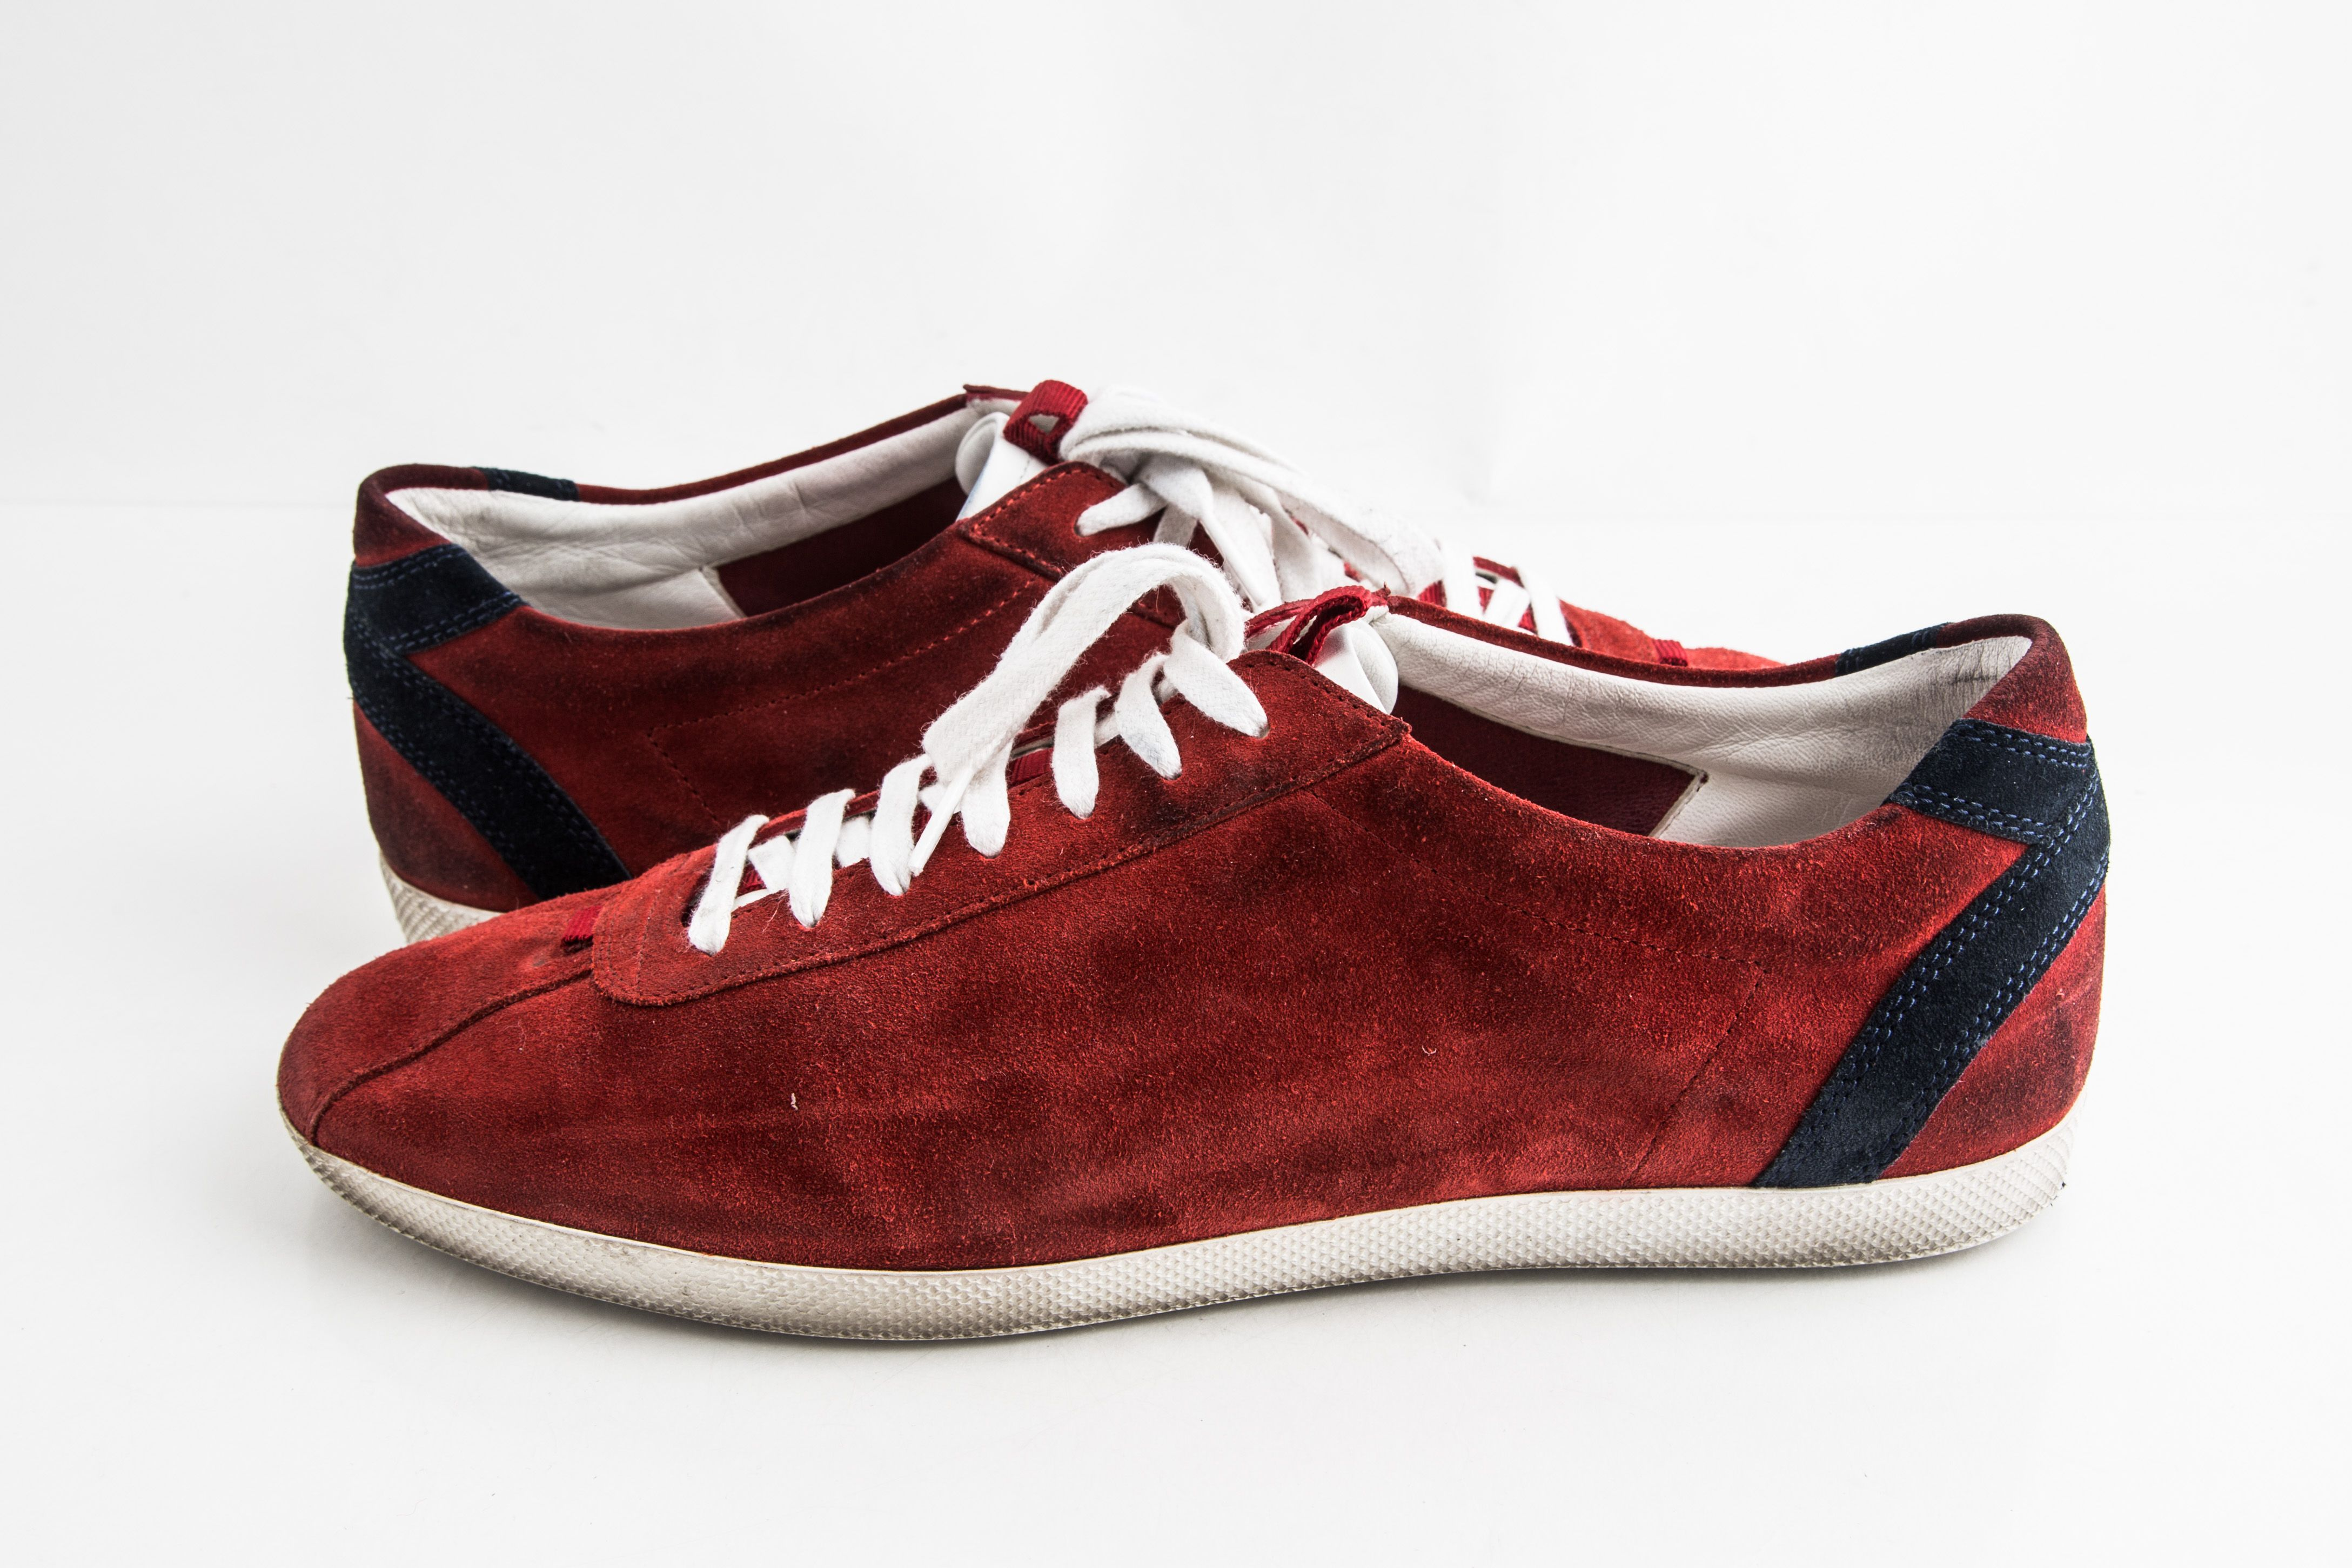 Gucci Suede Trainers Sneakers Softy Red